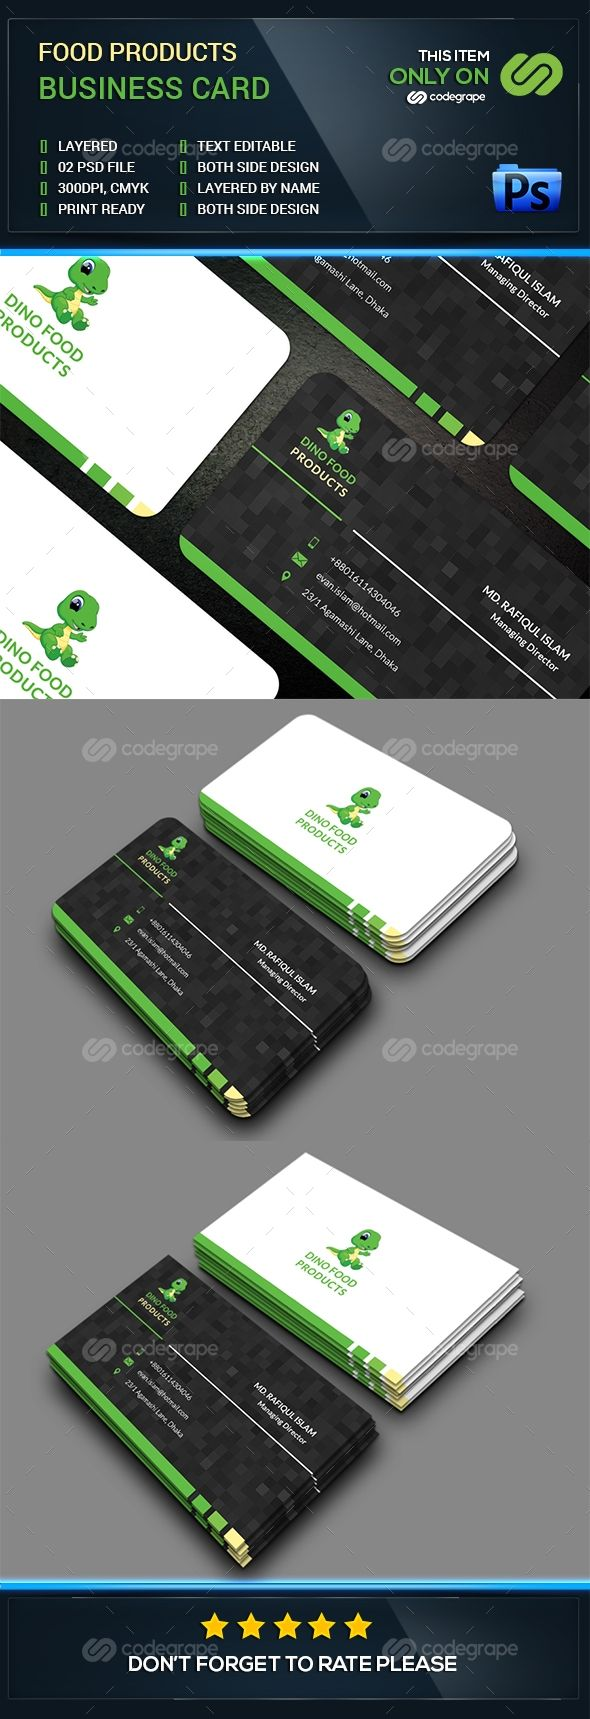 food products business card